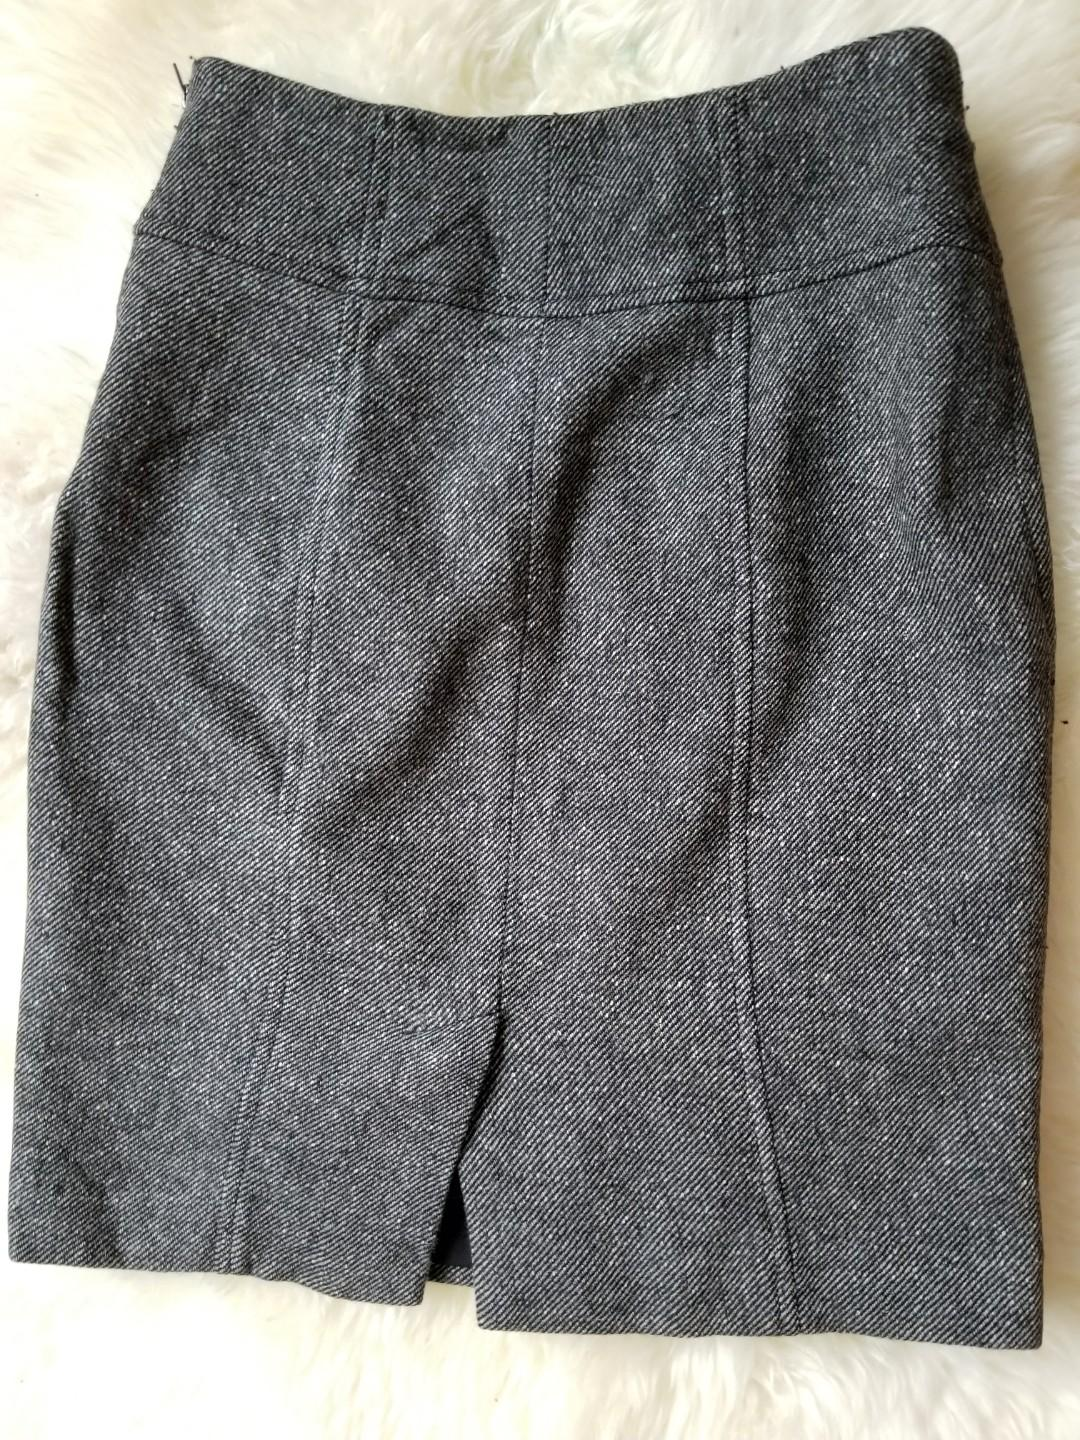 Banana Republic lined skirt. Beautiful exposed side zip. Size 00p. Purchased new for $119. Excellent condition. Priced to sell.